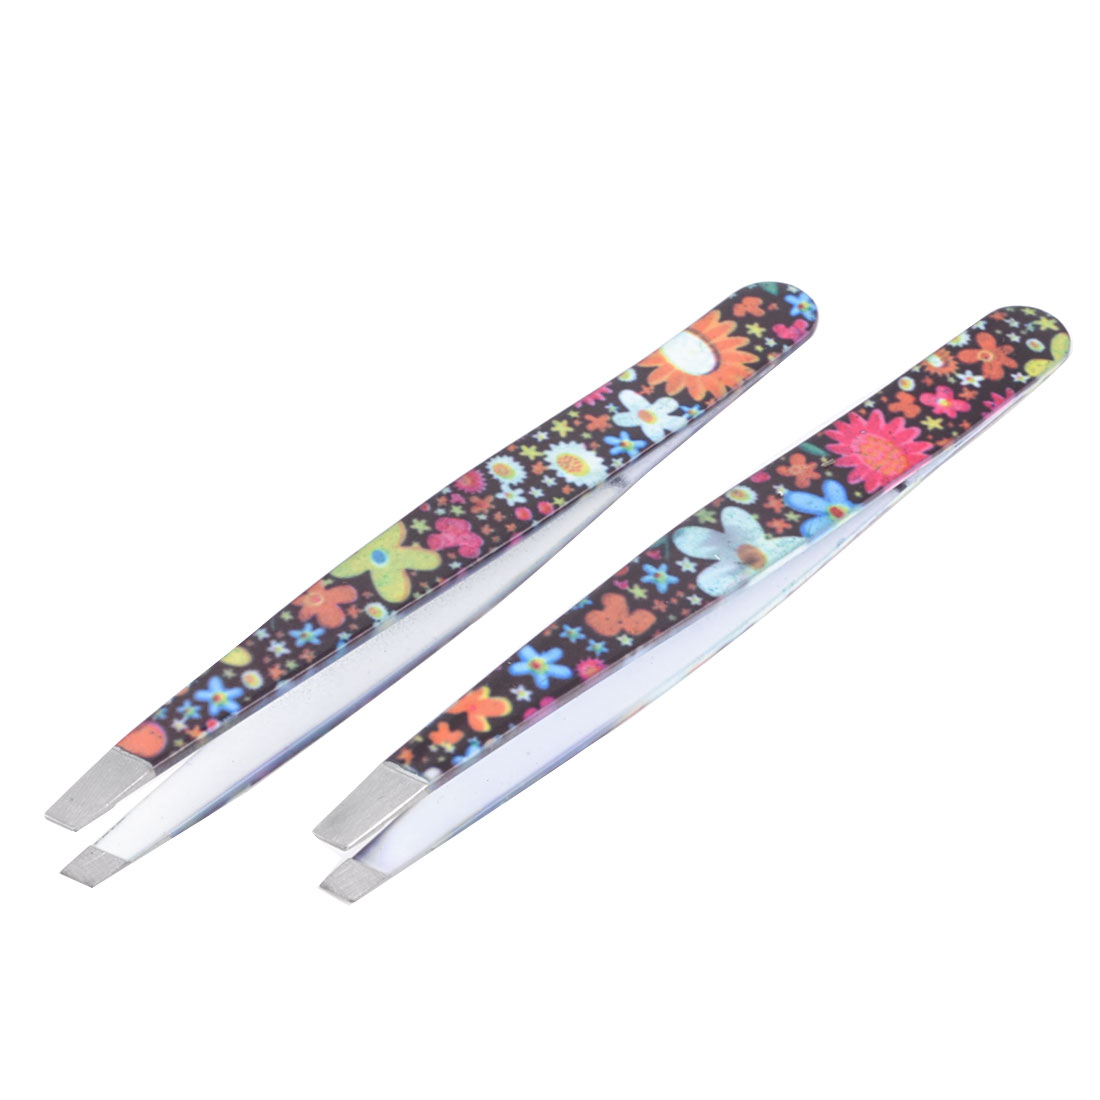 Lady Cosmetic Tool Colorful Flowers Pattern Slanted Tip Eyebrow Tweezer 2 Pcs